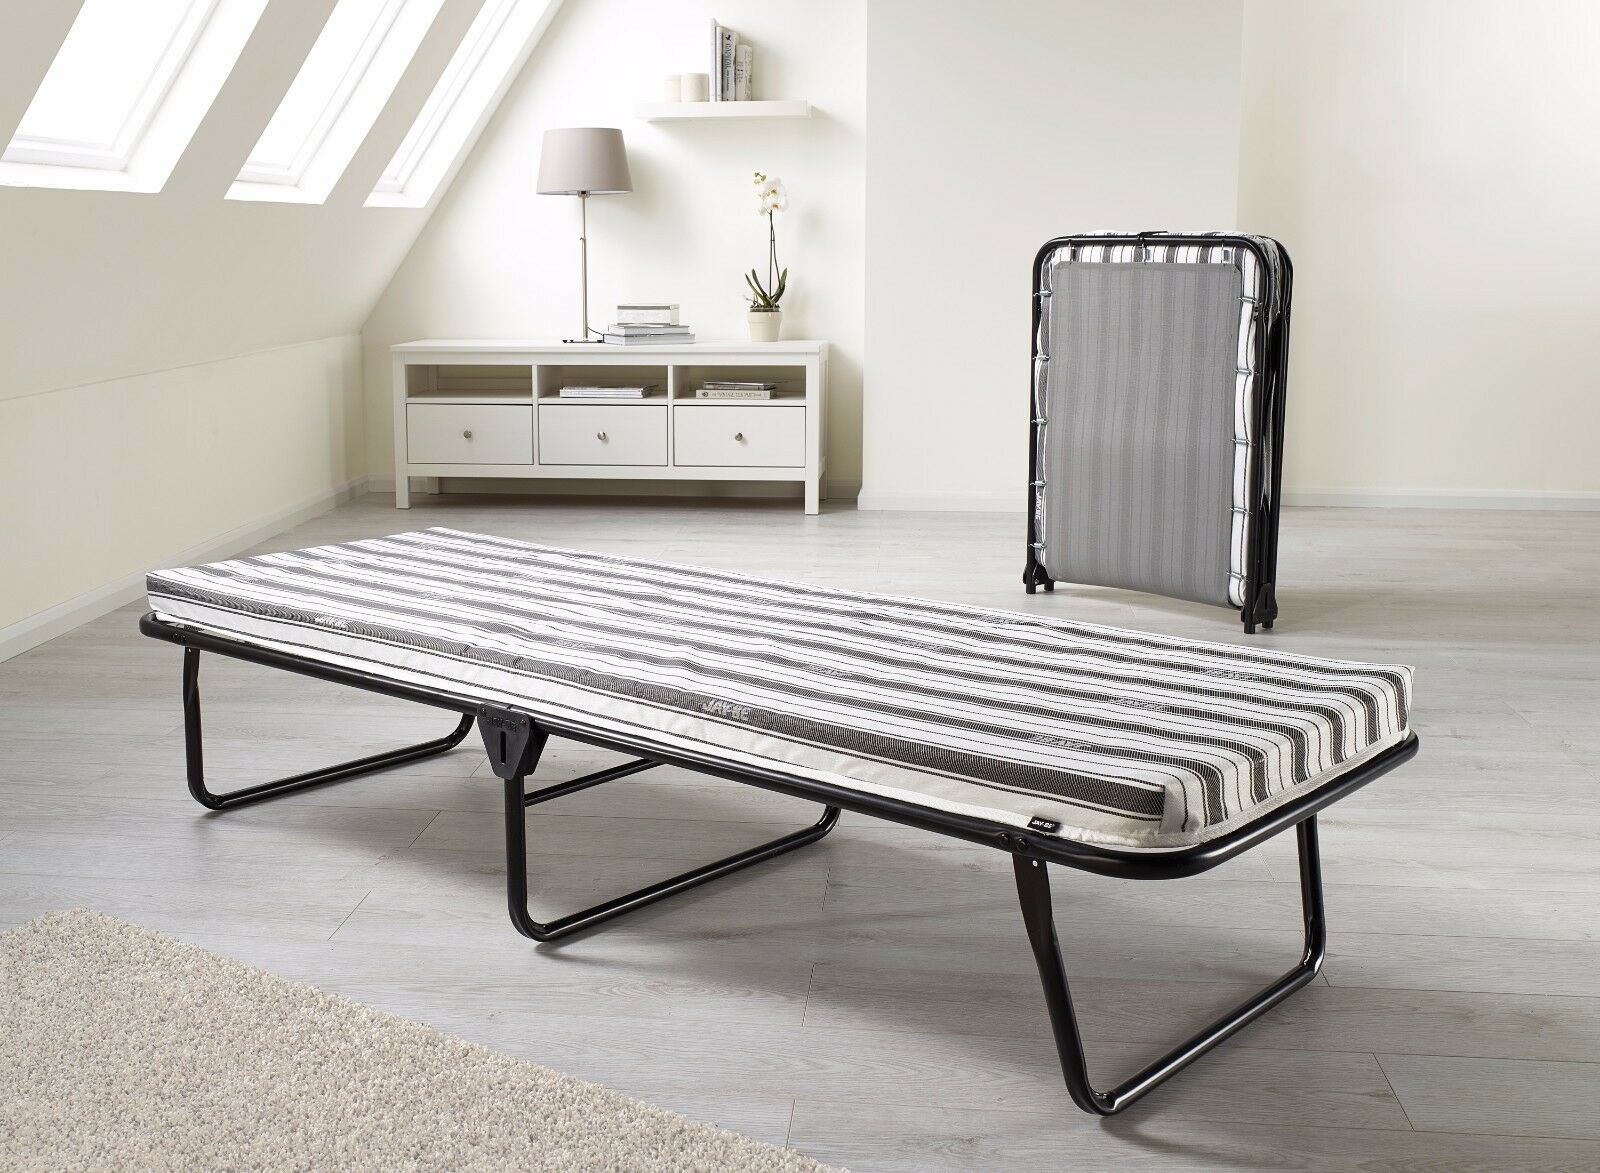 - Jaybe Guest Value Single Small Double Folding Bed With Airflow